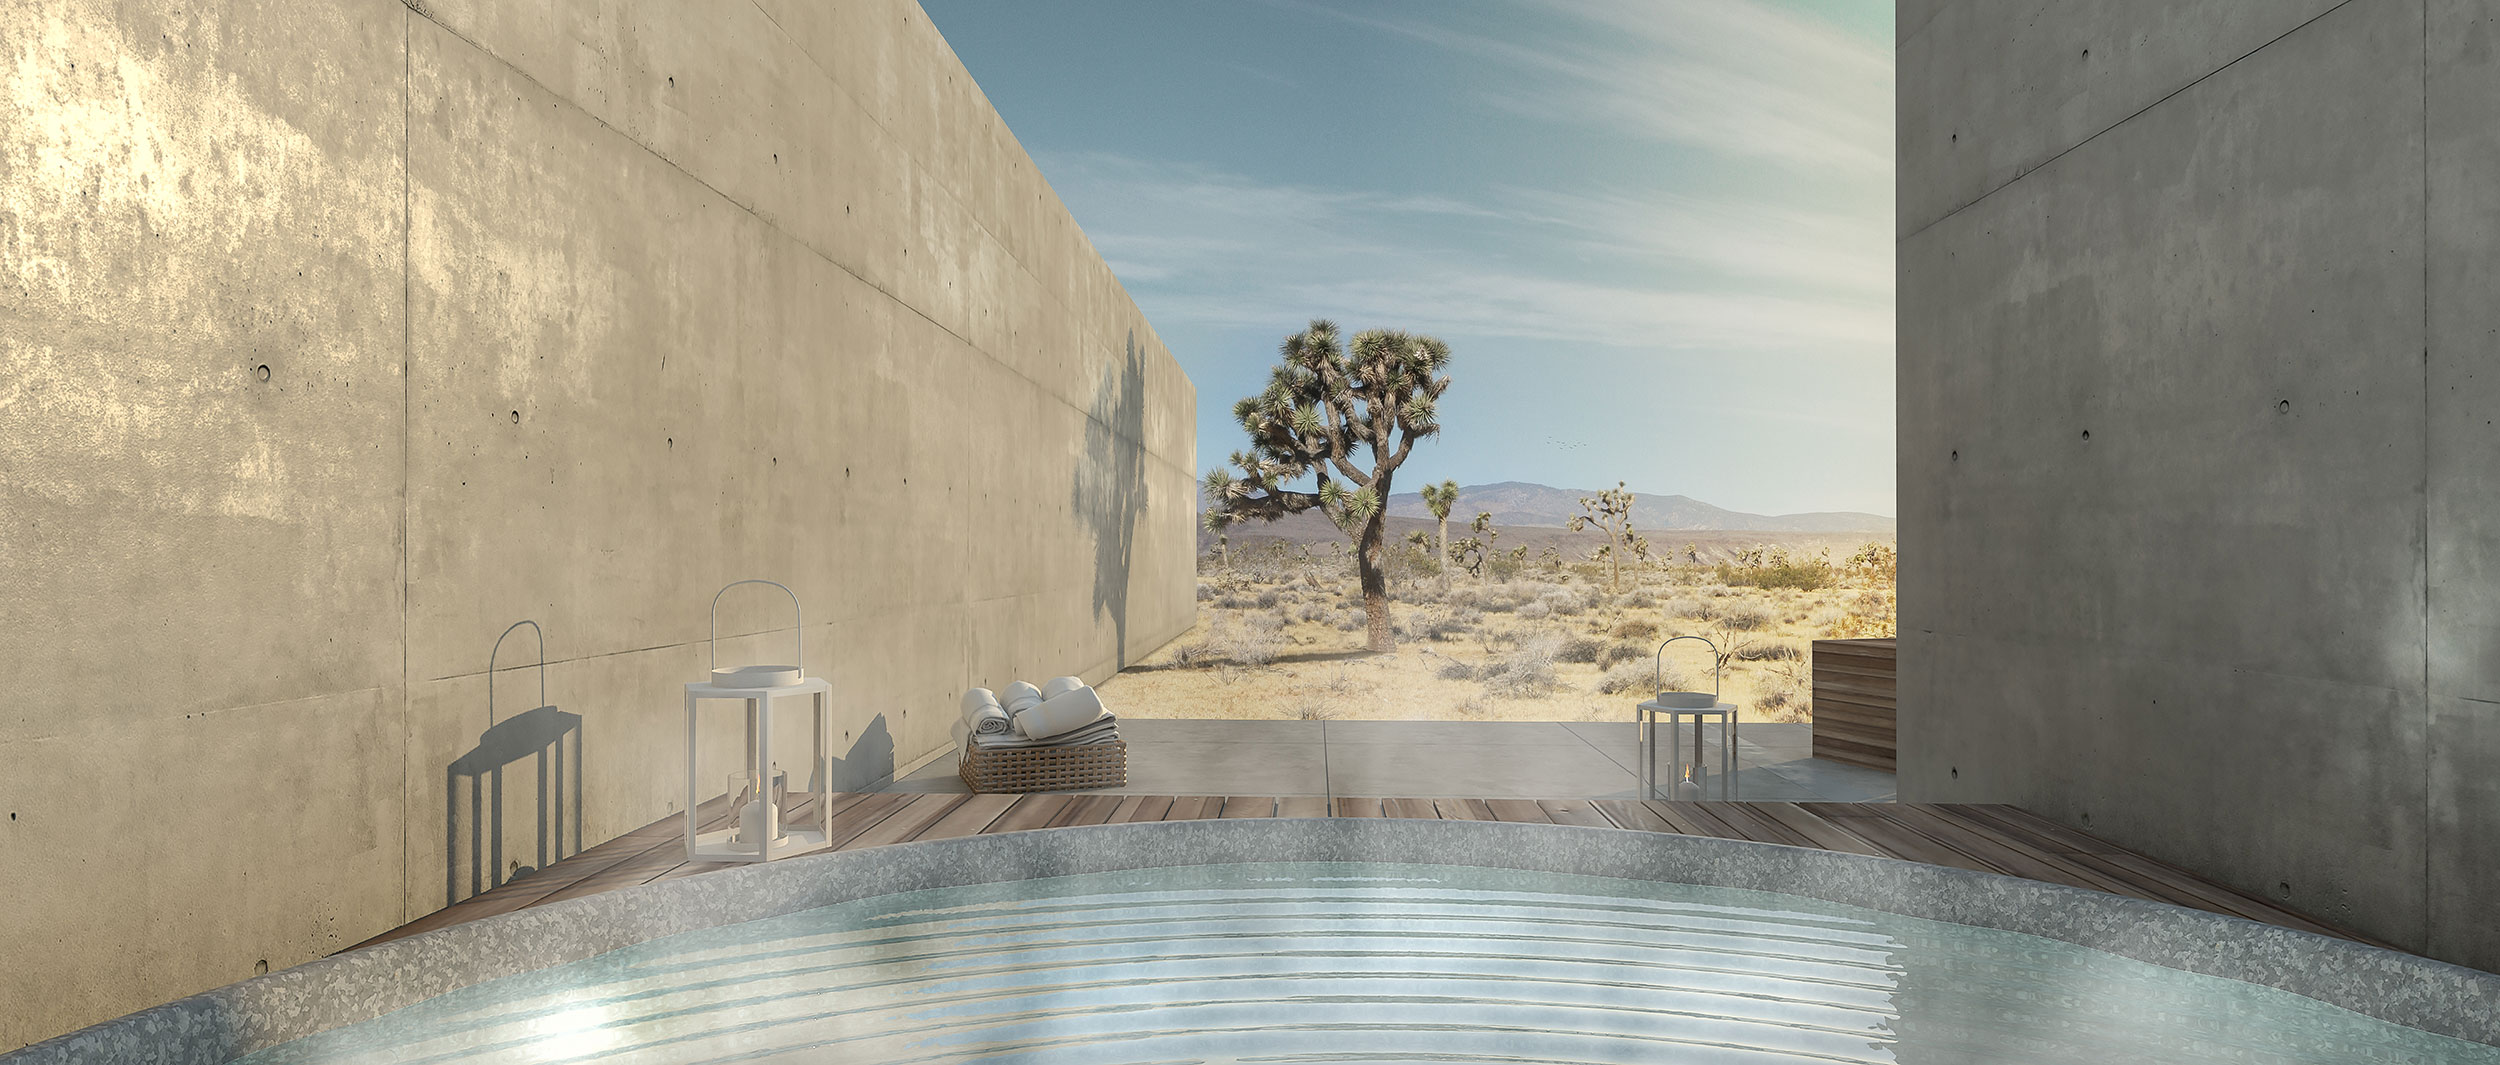 casaplutonia-resort-joshua-tree-archillusion-design-outside-hot-bath.jpg